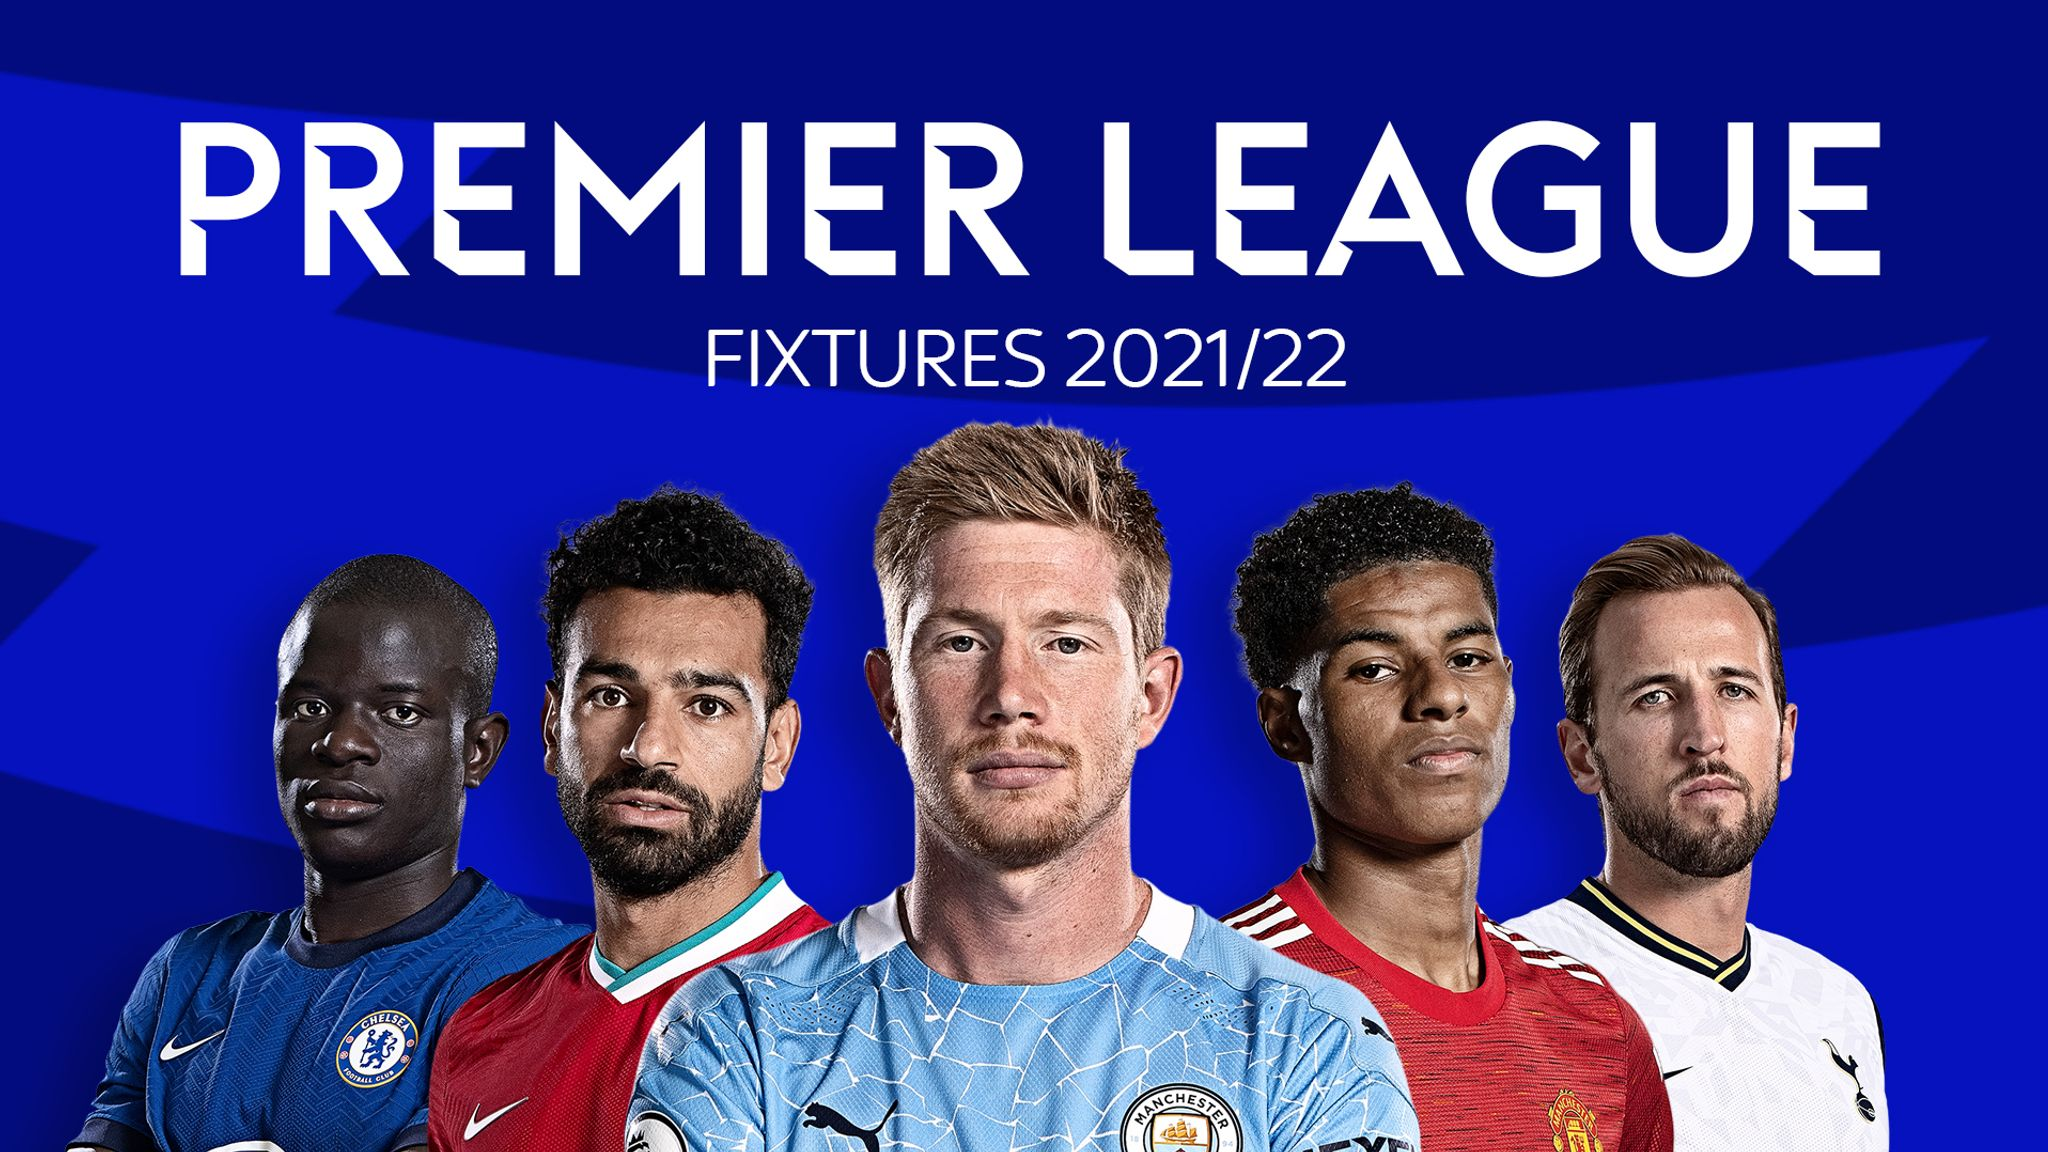 The most interesting upcoming EPL fixtures